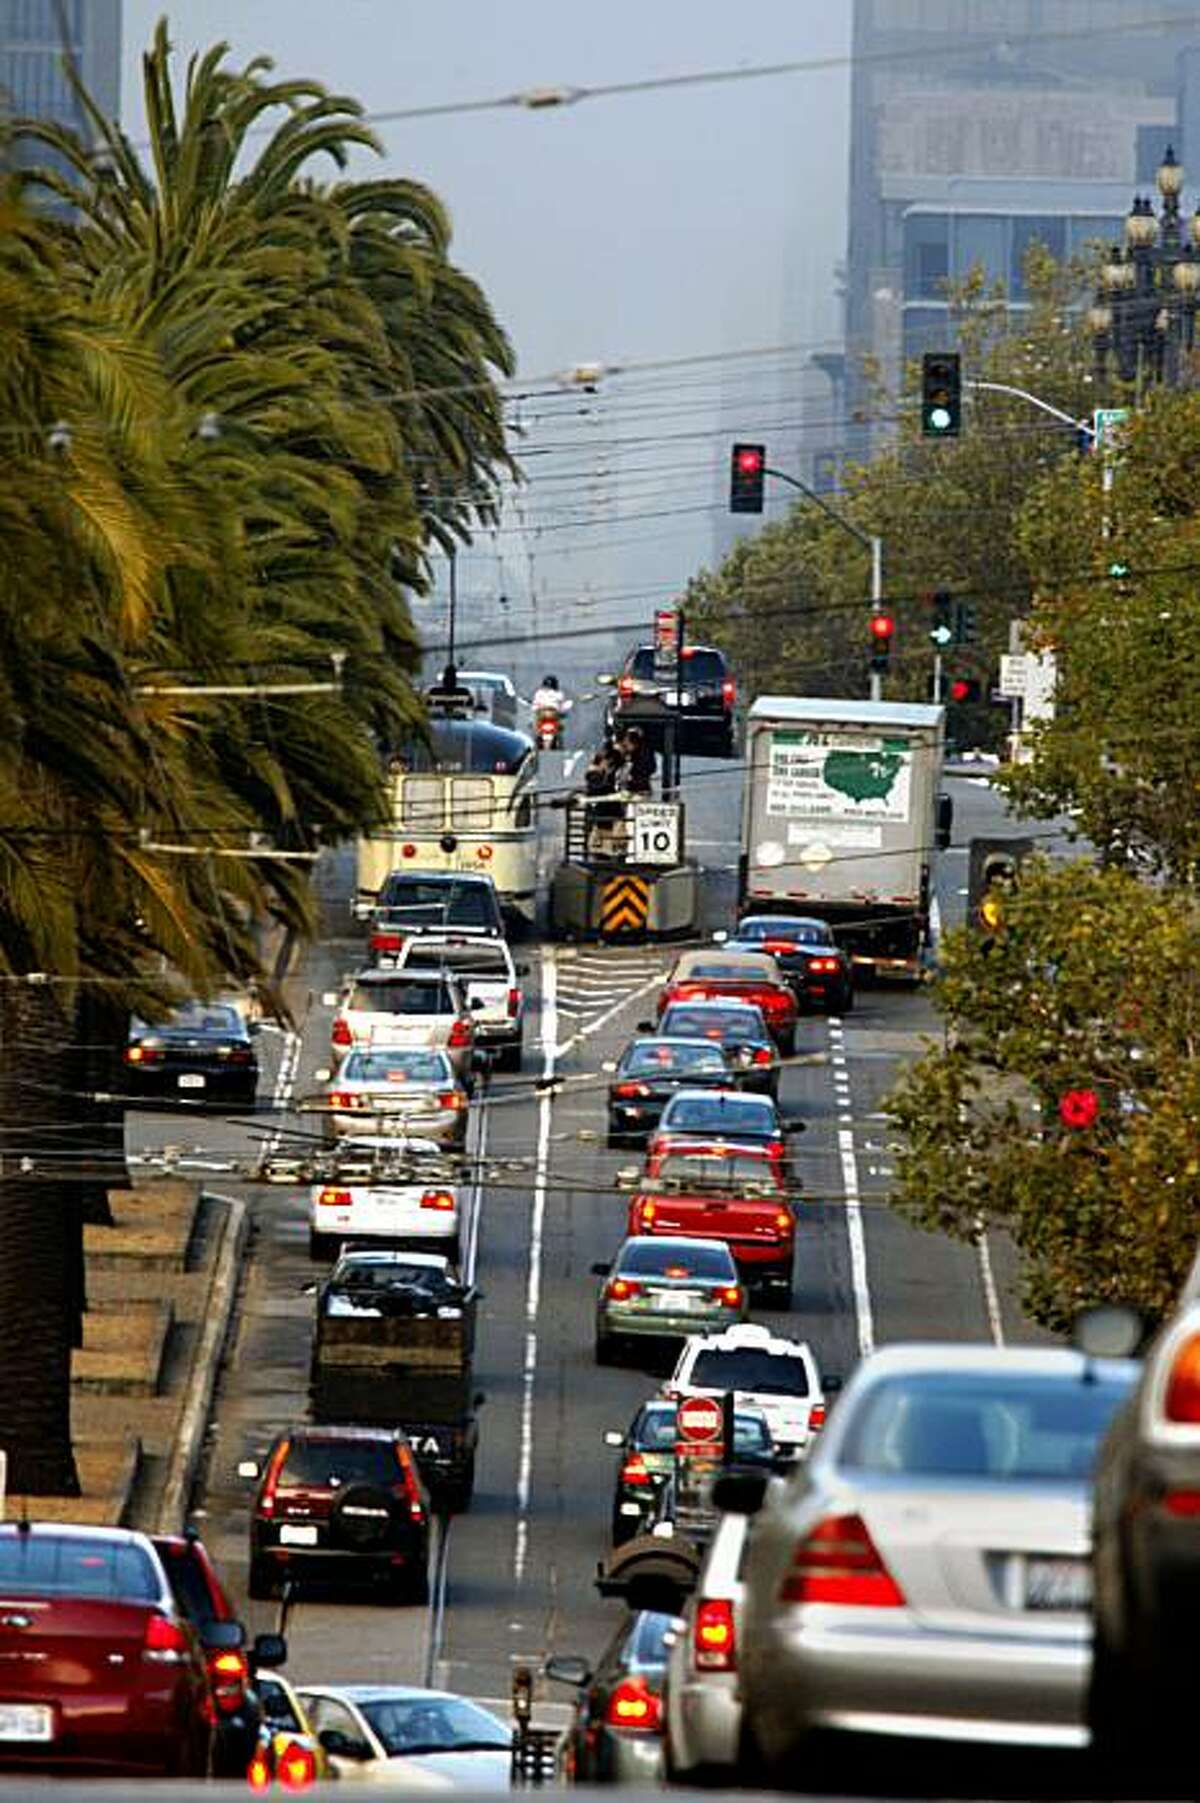 Eastbound traffic on Market Street near 15th St. (outside the range of closures) in San Francisco, Calif., on Thursday, September 24, 2009. Starting Sept. 29 the city is launching a six week pilot project that will require cars heading East on Market toward the Ferry Building to turn off at 8th or 6th streets.